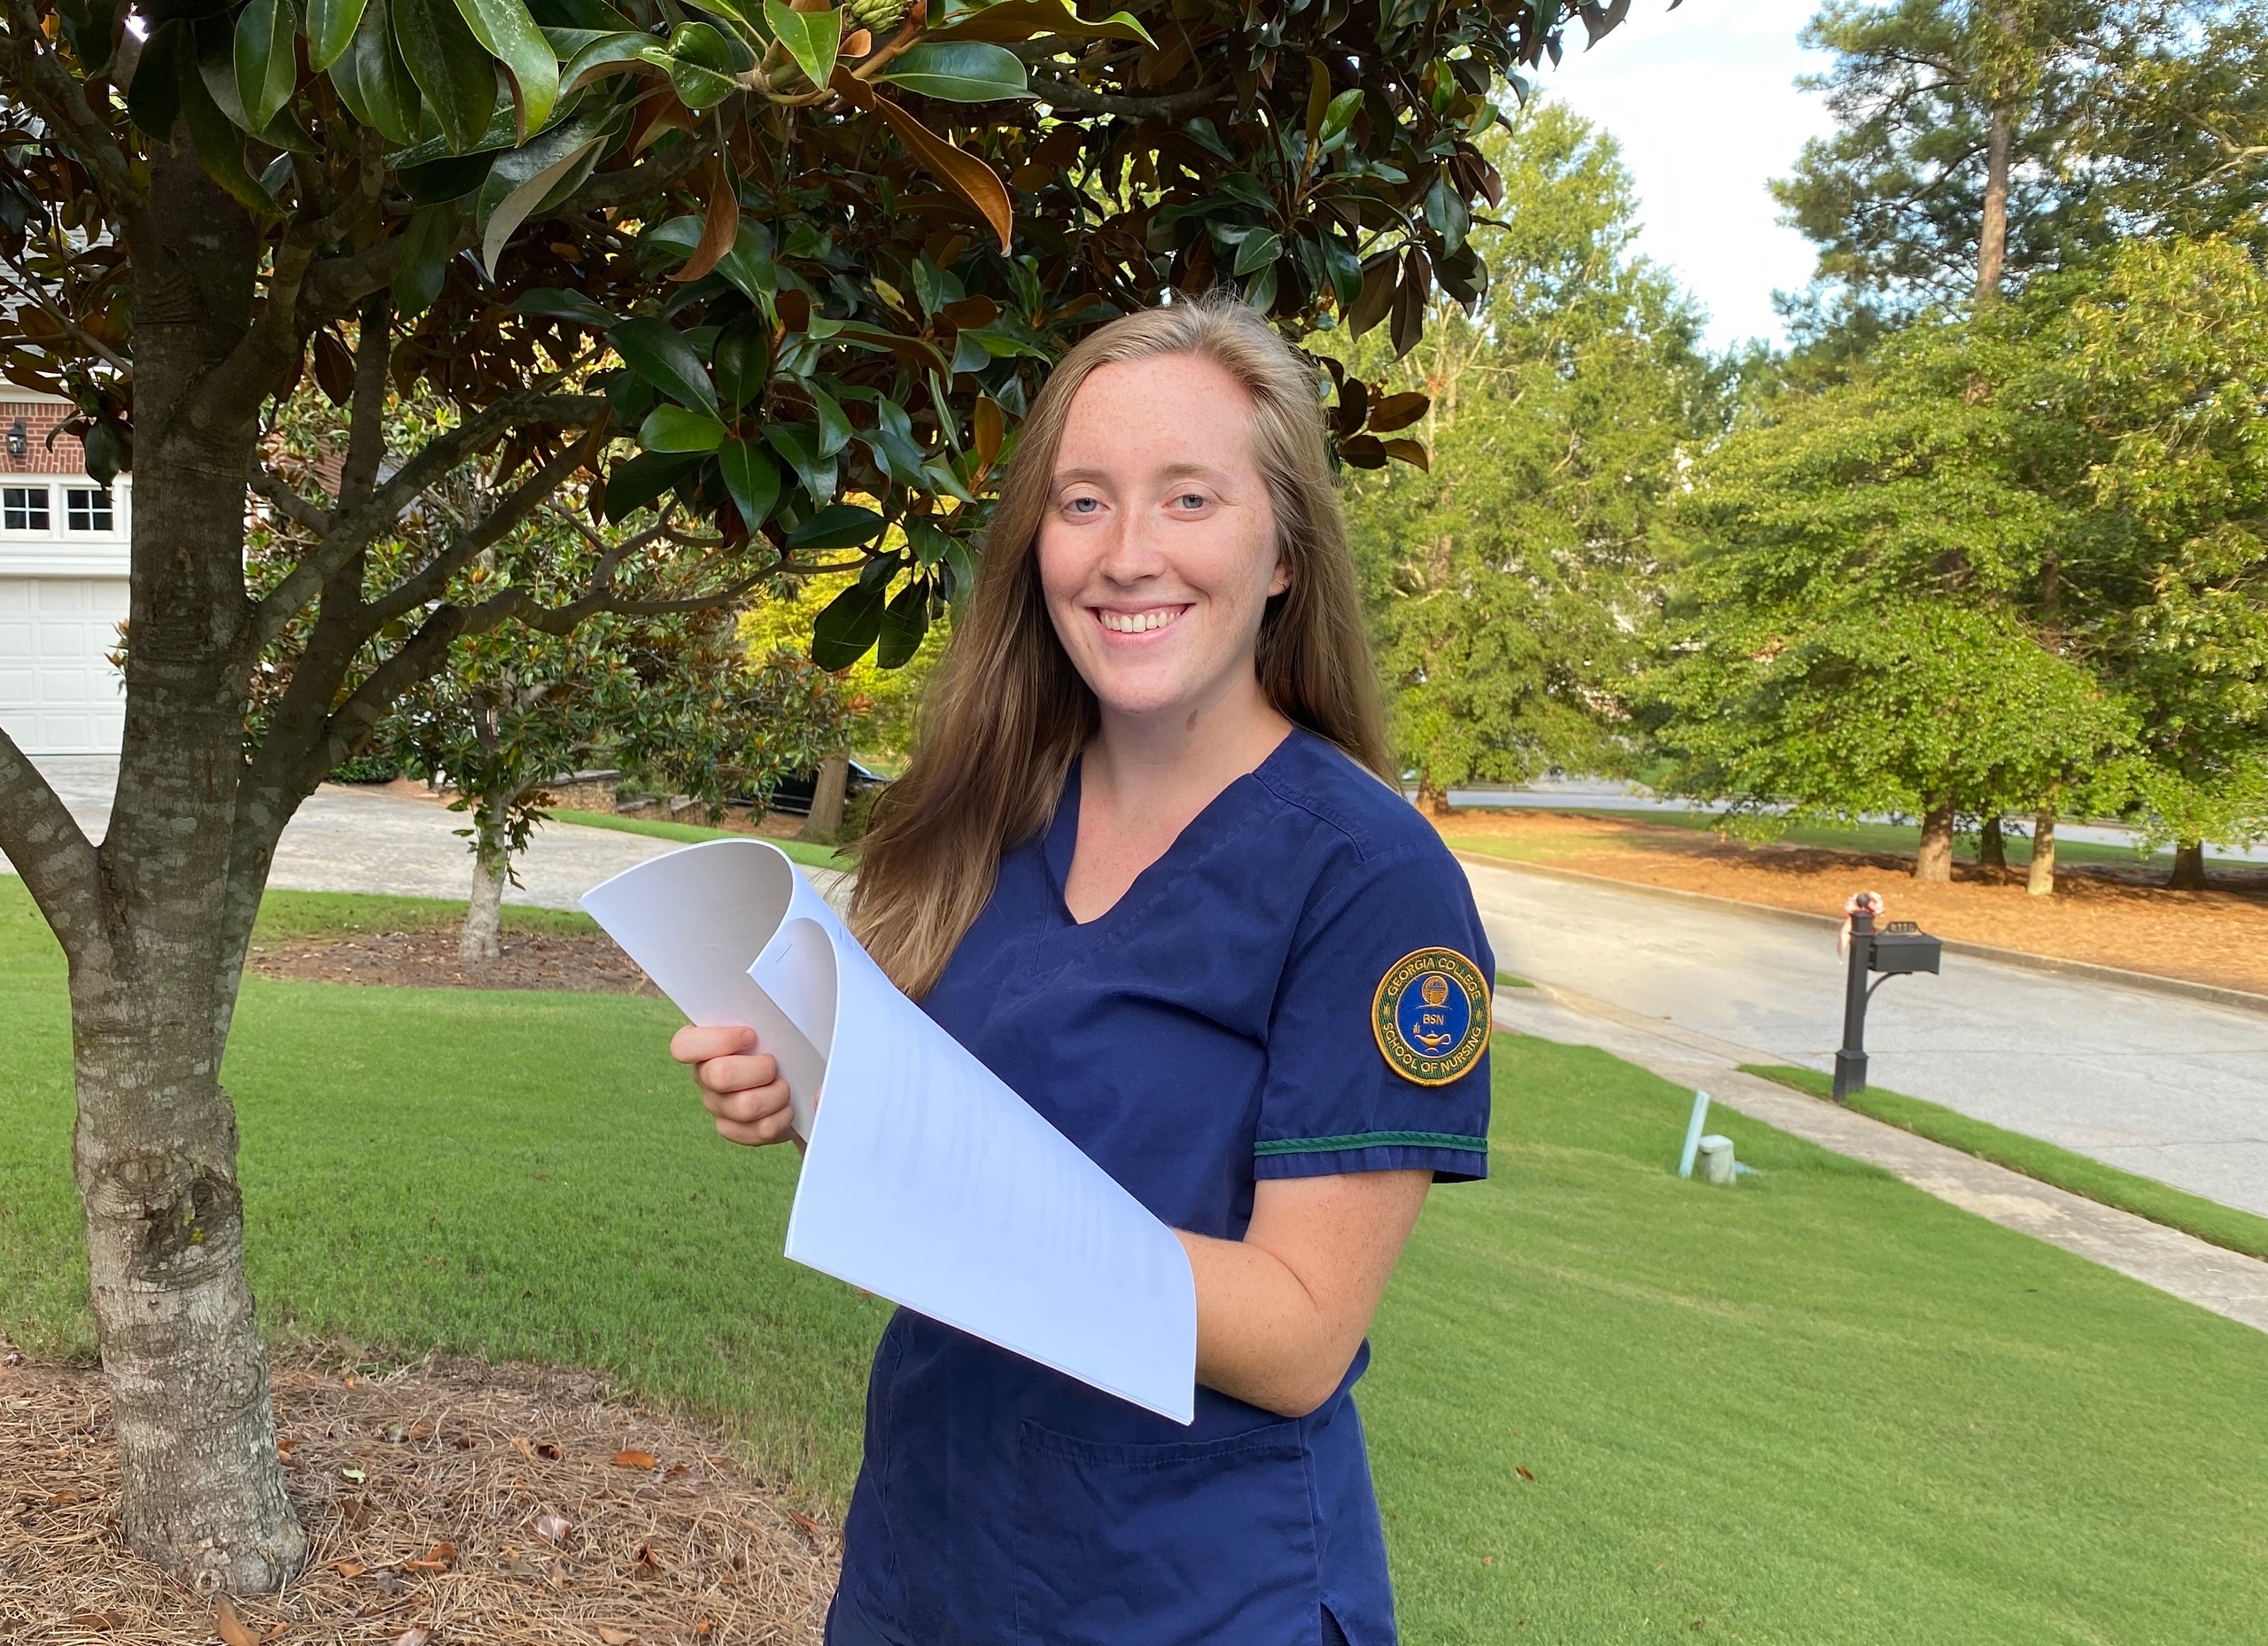 Abagail Ralston is ready to apply what she's learned from the online Chile study abroad program to nursing.